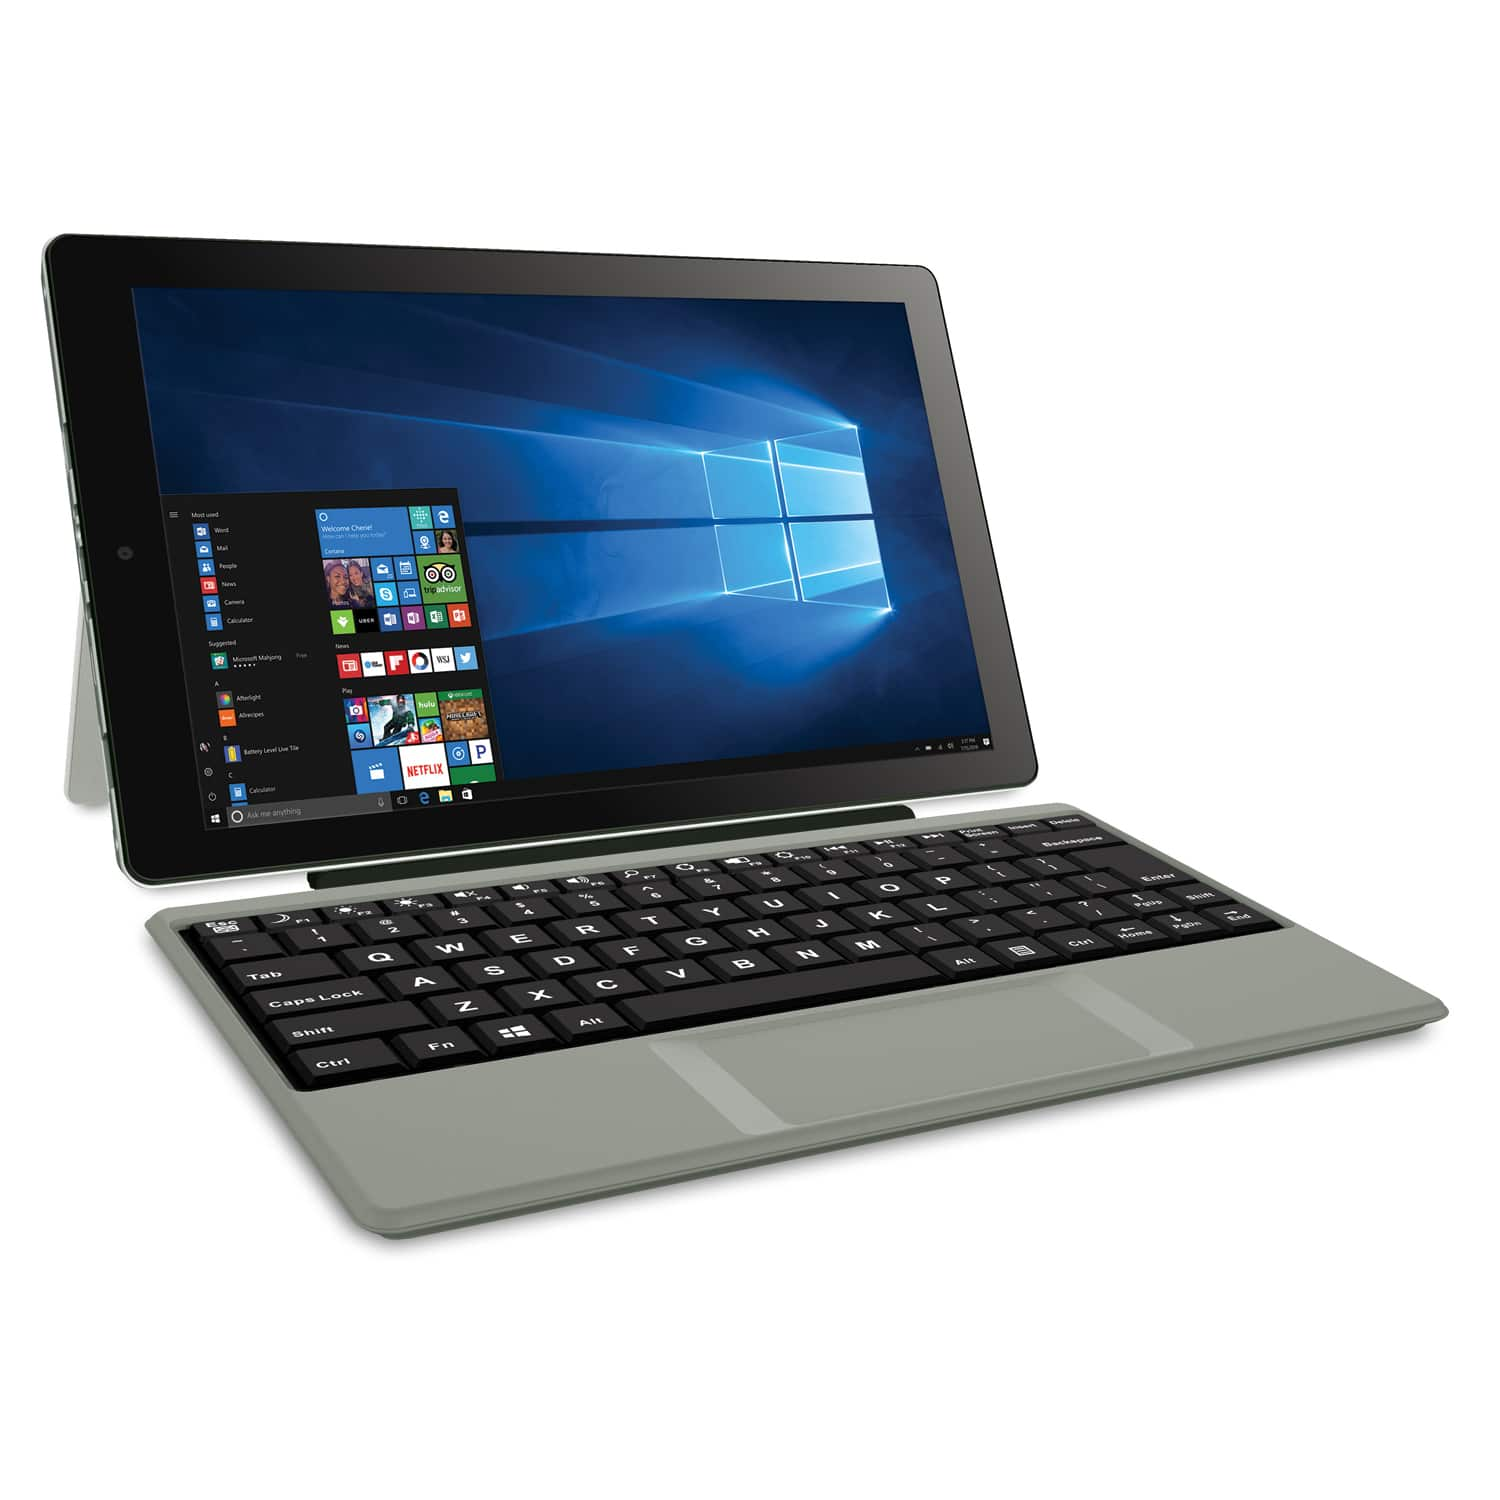 "RCA Cambio 10.1"" ""2-in-1"" 32GB Tablet with Windows 10, Intel Atom Z8350 2GB RAM, Includes Keyboard, $74 Walmart B&M"